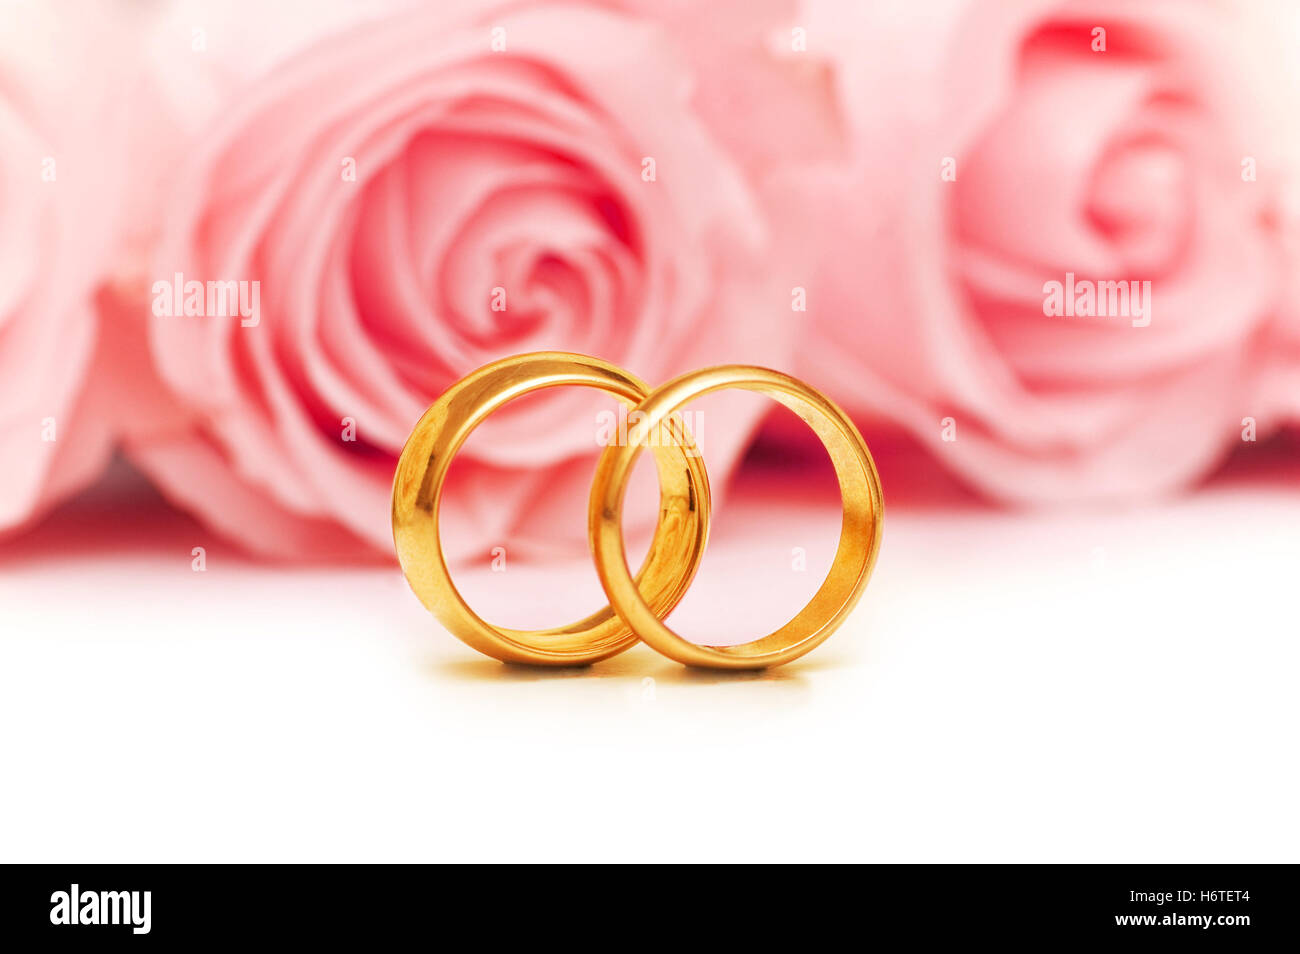 Red Roses Wedding Ring Isolated Stock Photos & Red Roses Wedding ...